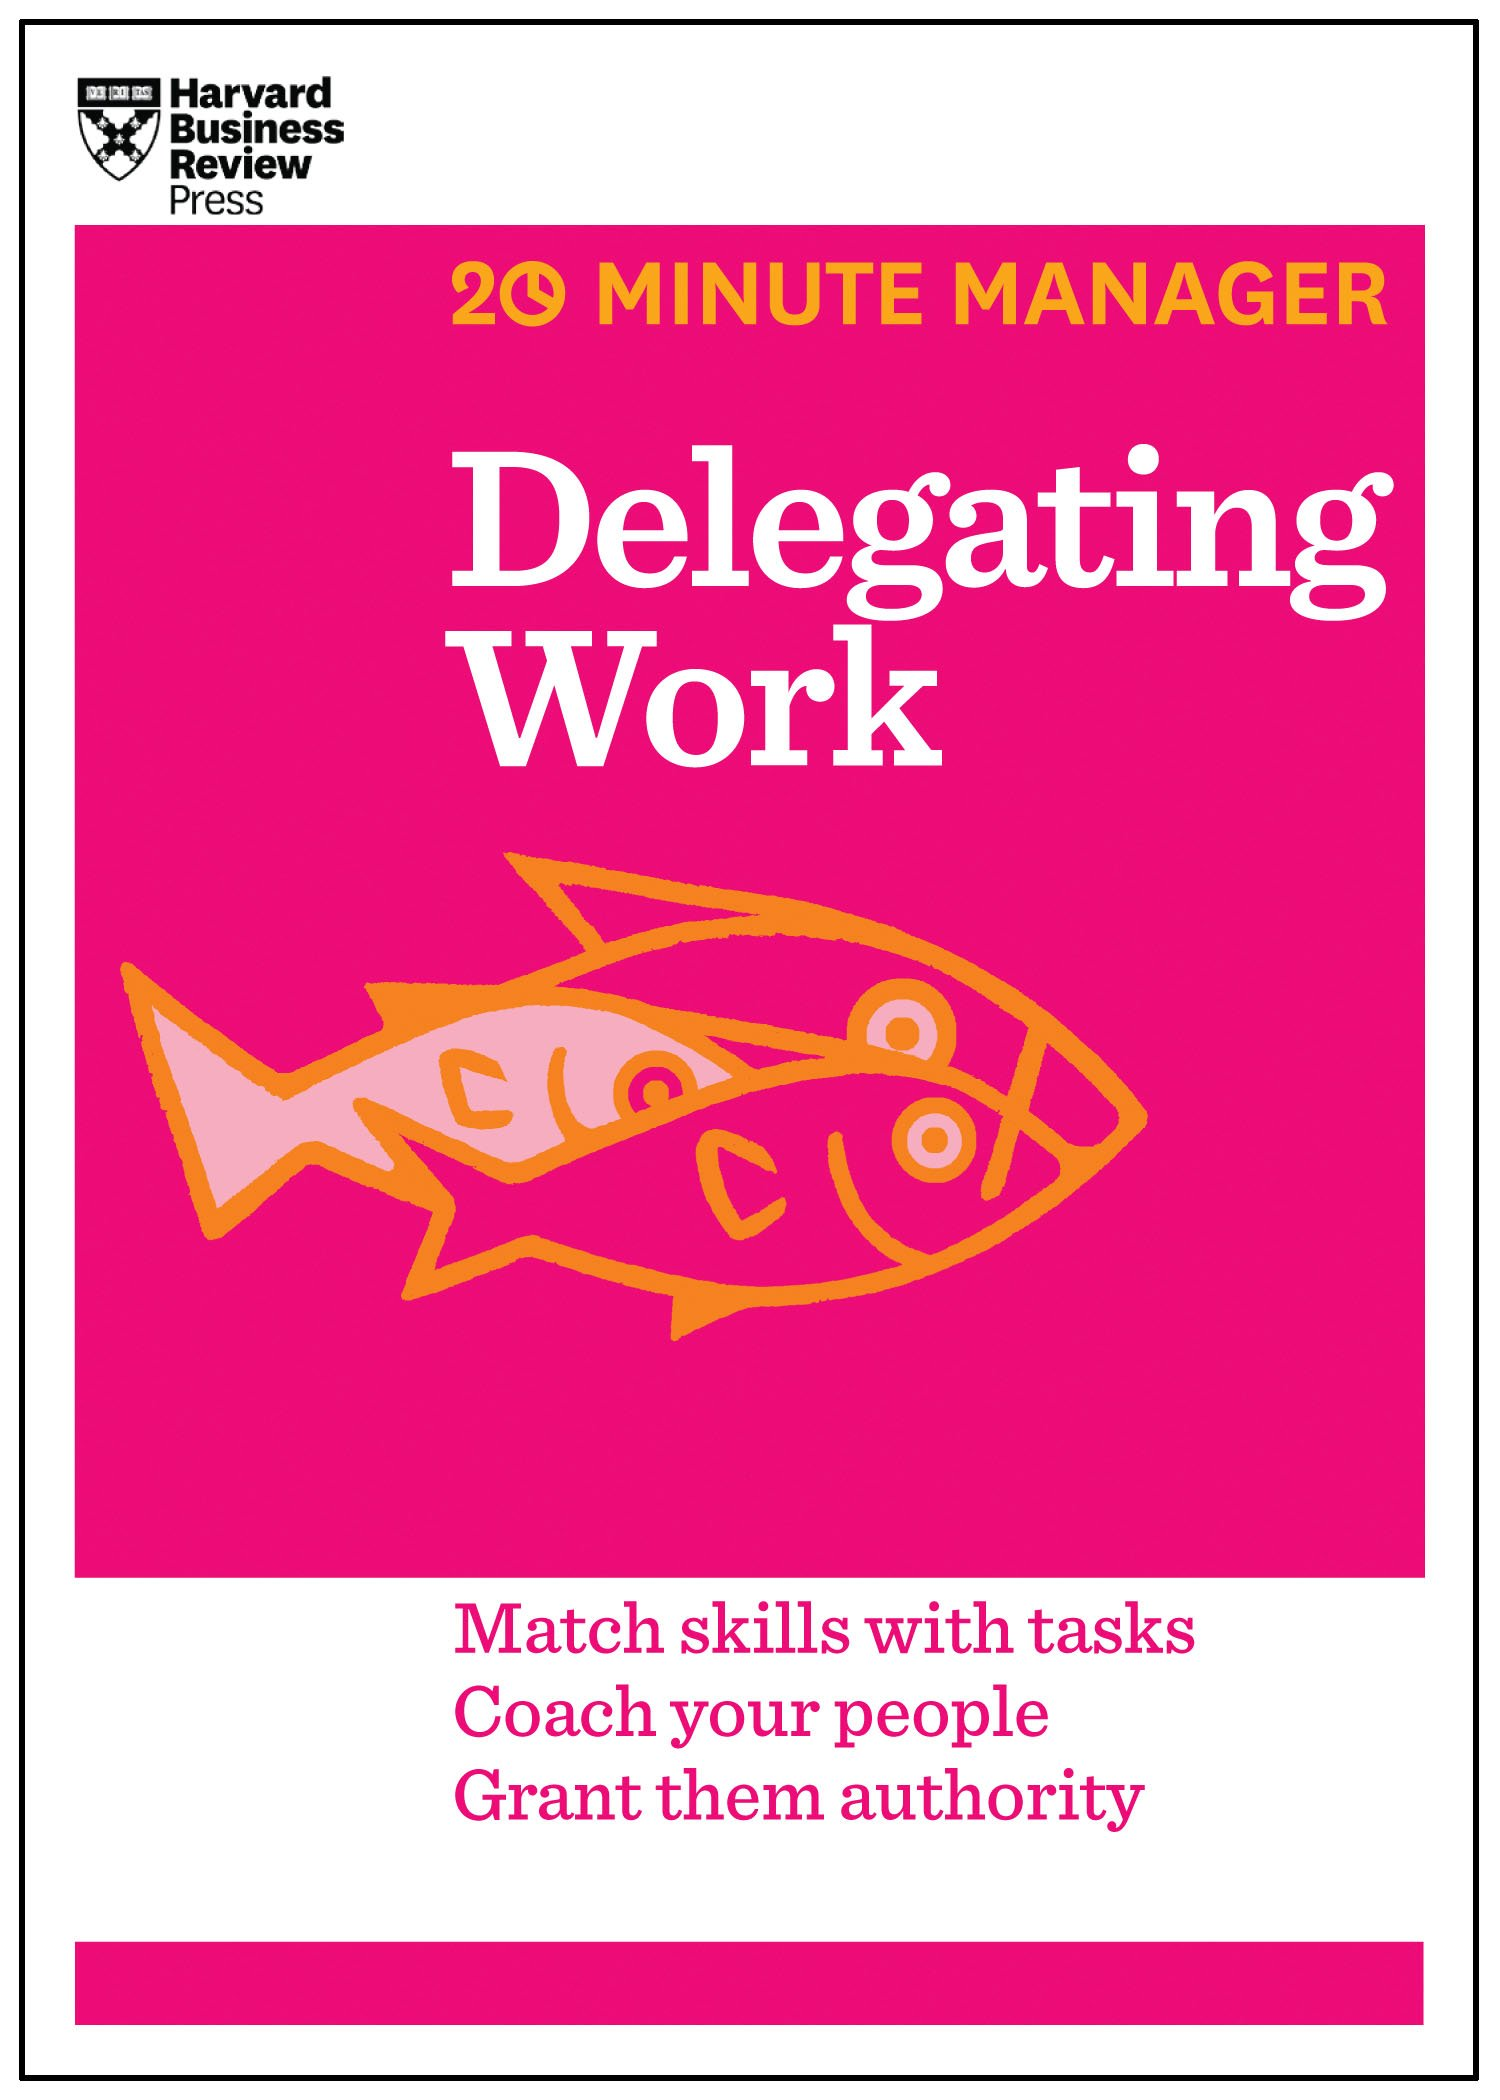 Amazon Com Delegating Work Hbr 20 Minute Manager Series 9781625272232 Review Harvard Business Books